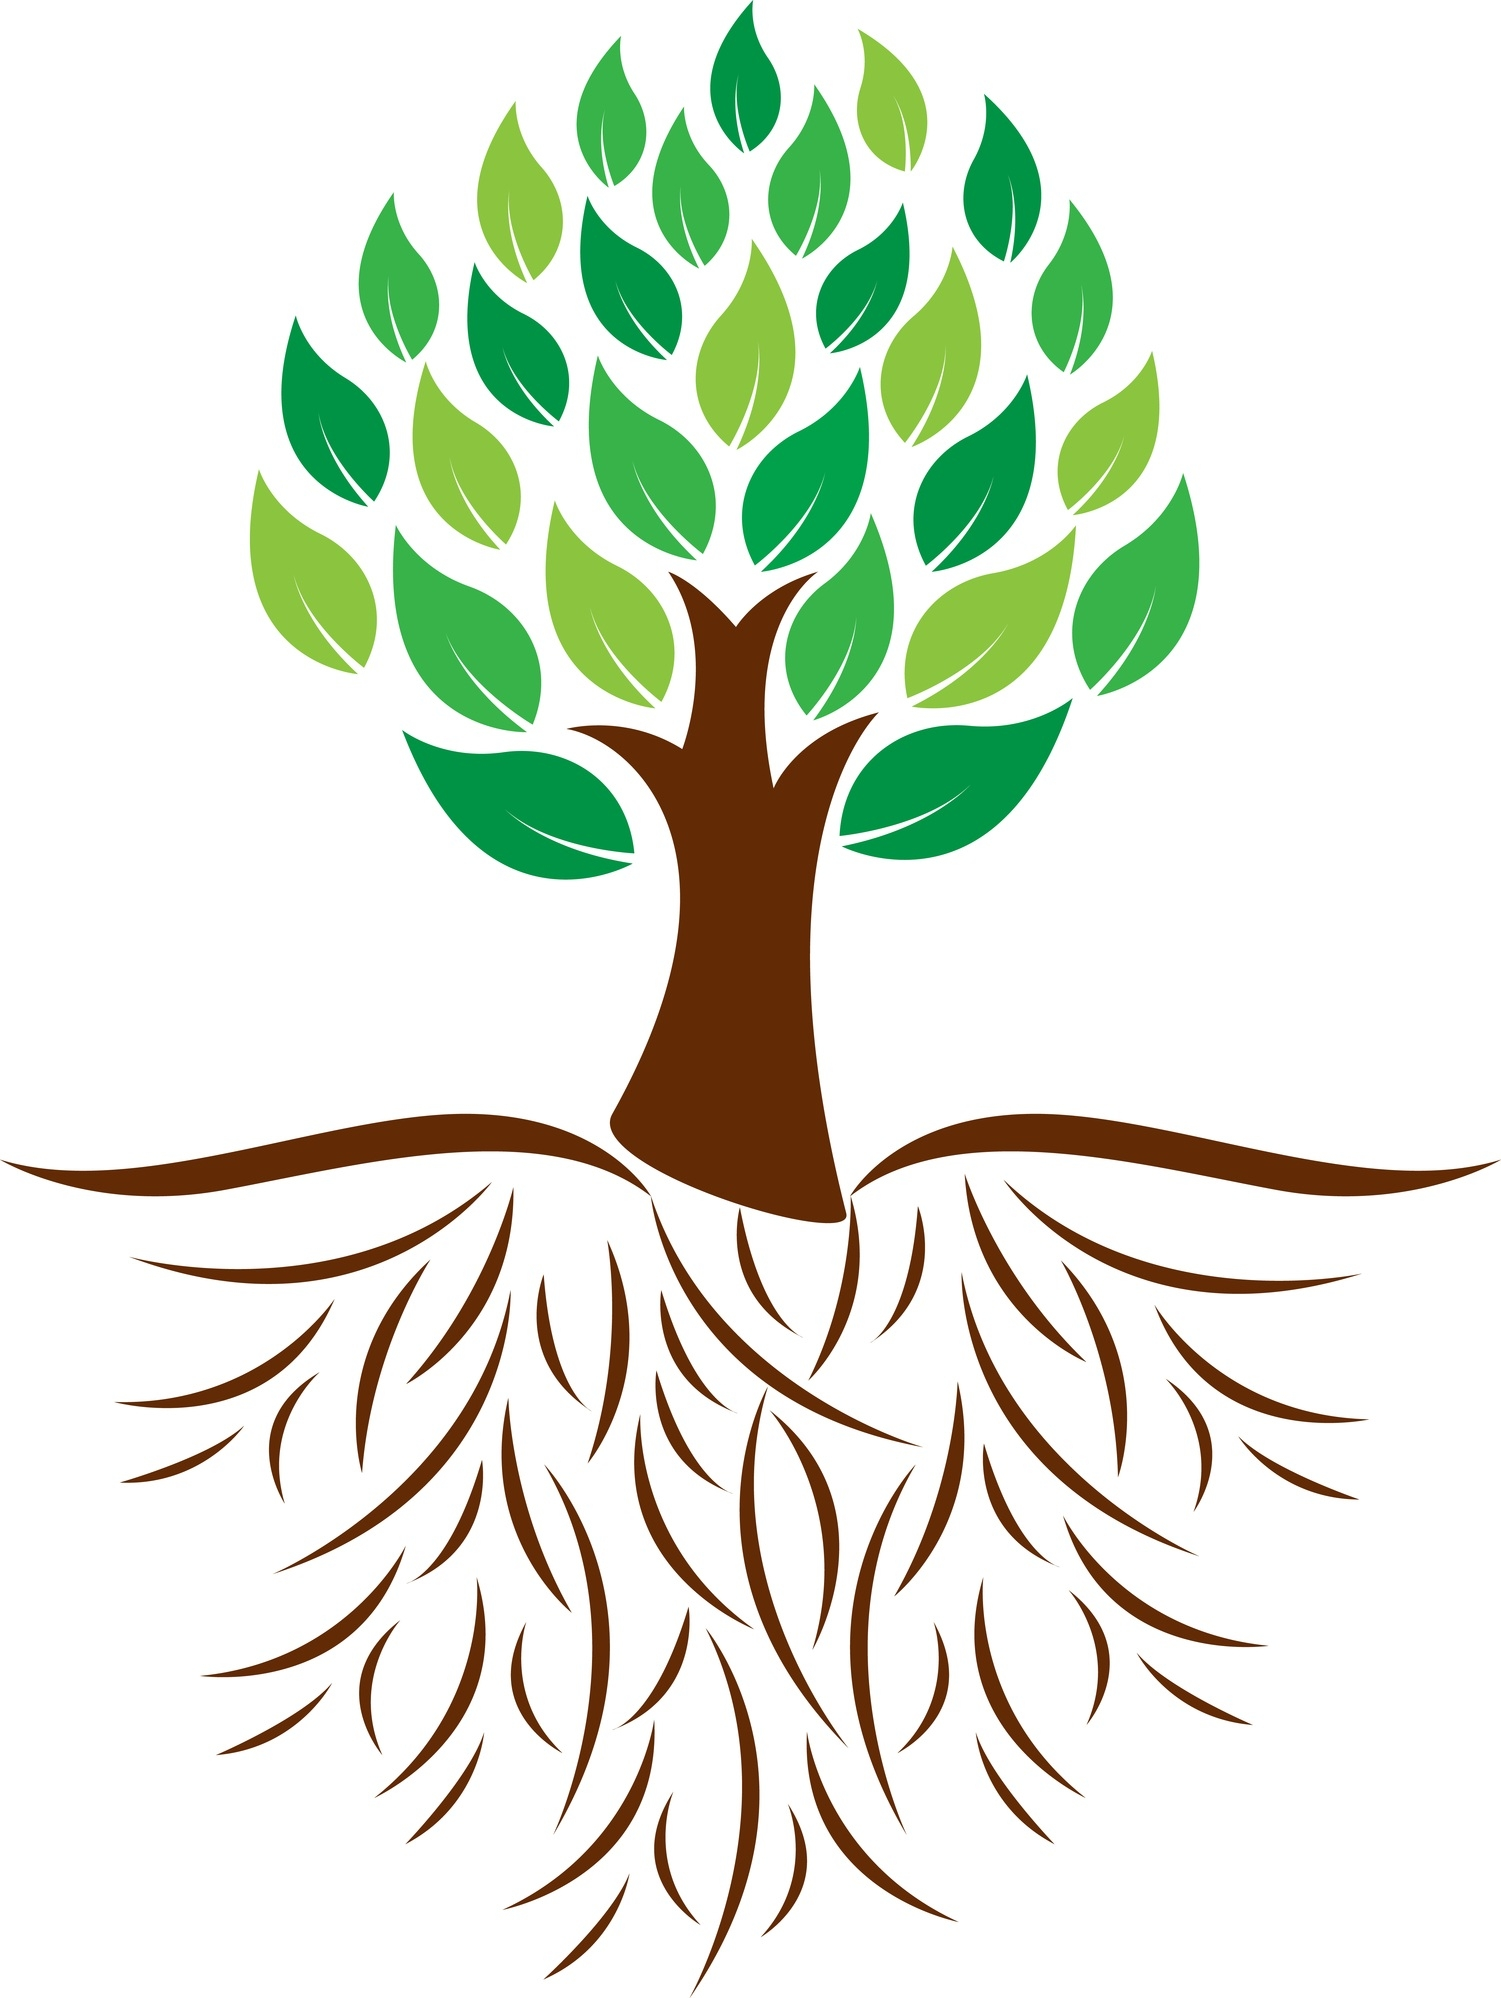 Roots clipart apple tree. Amazing of with letter